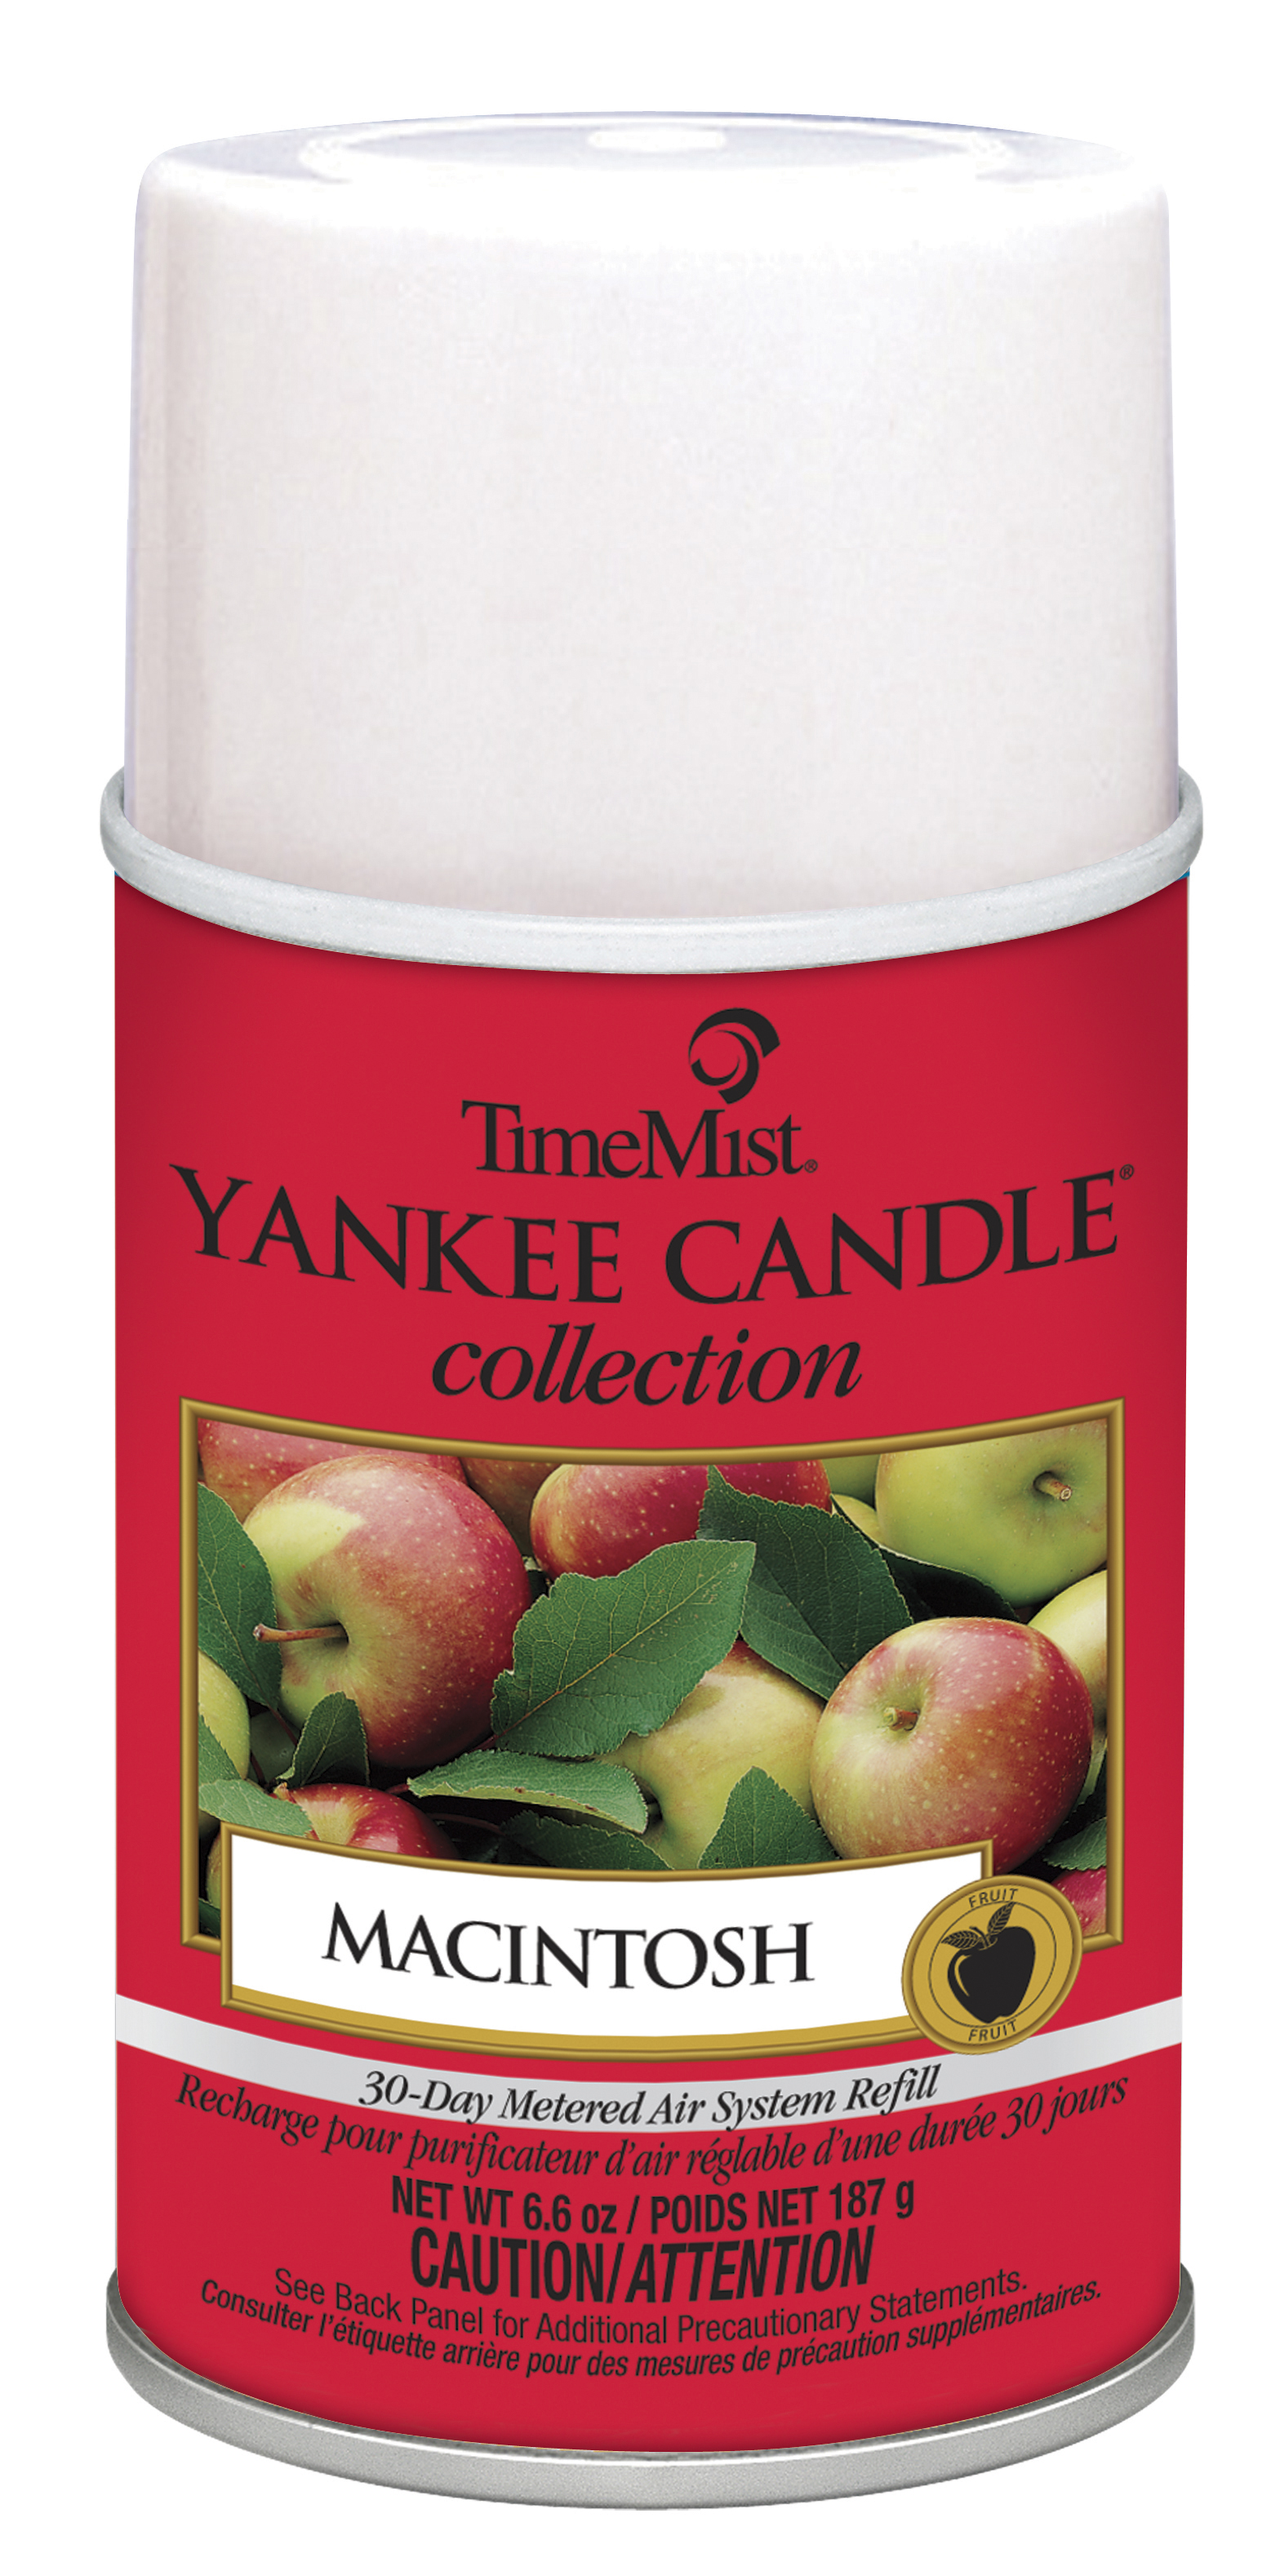 Macintosh-Yankee Candle - TimeMist - for Classic Dispensers